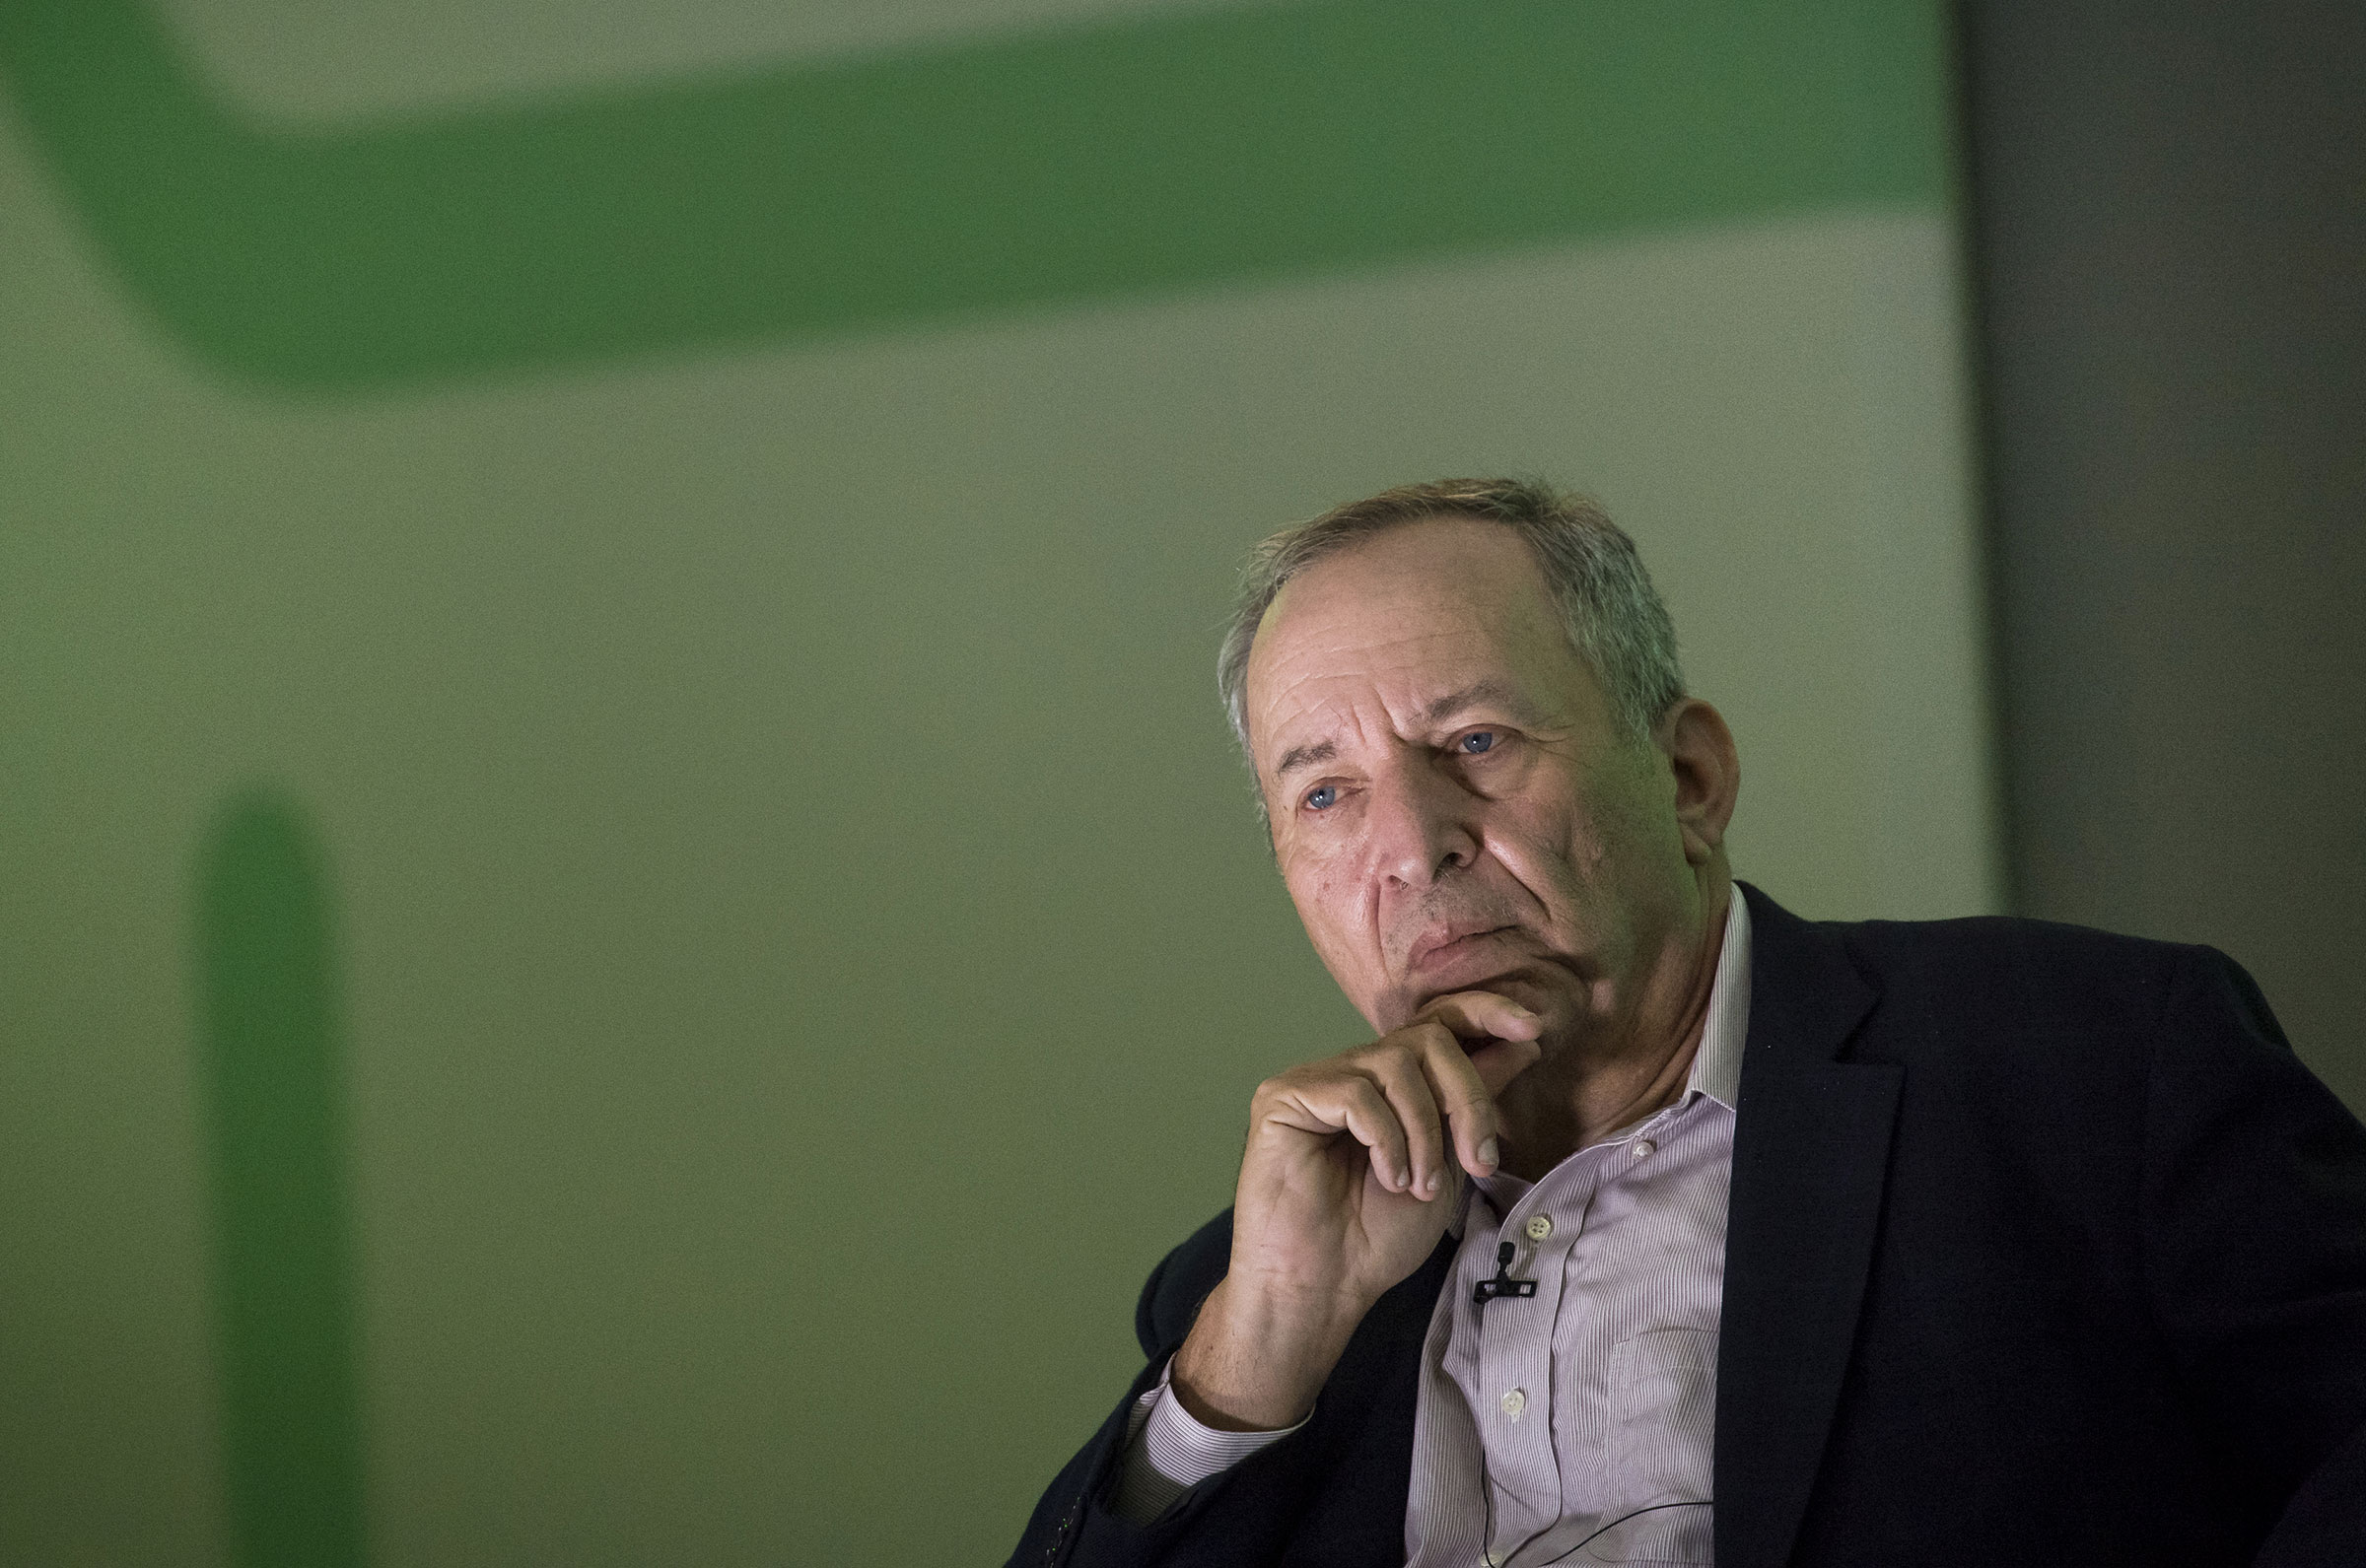 Larry Summers, former U.S. Treasury secretary. Summers is currently He is currently the Charles W. Eliot University Professor at Harvard University and the Weil Director of the Mossavar-Rahmani Center for Business & Government at Harvard's Kennedy School.